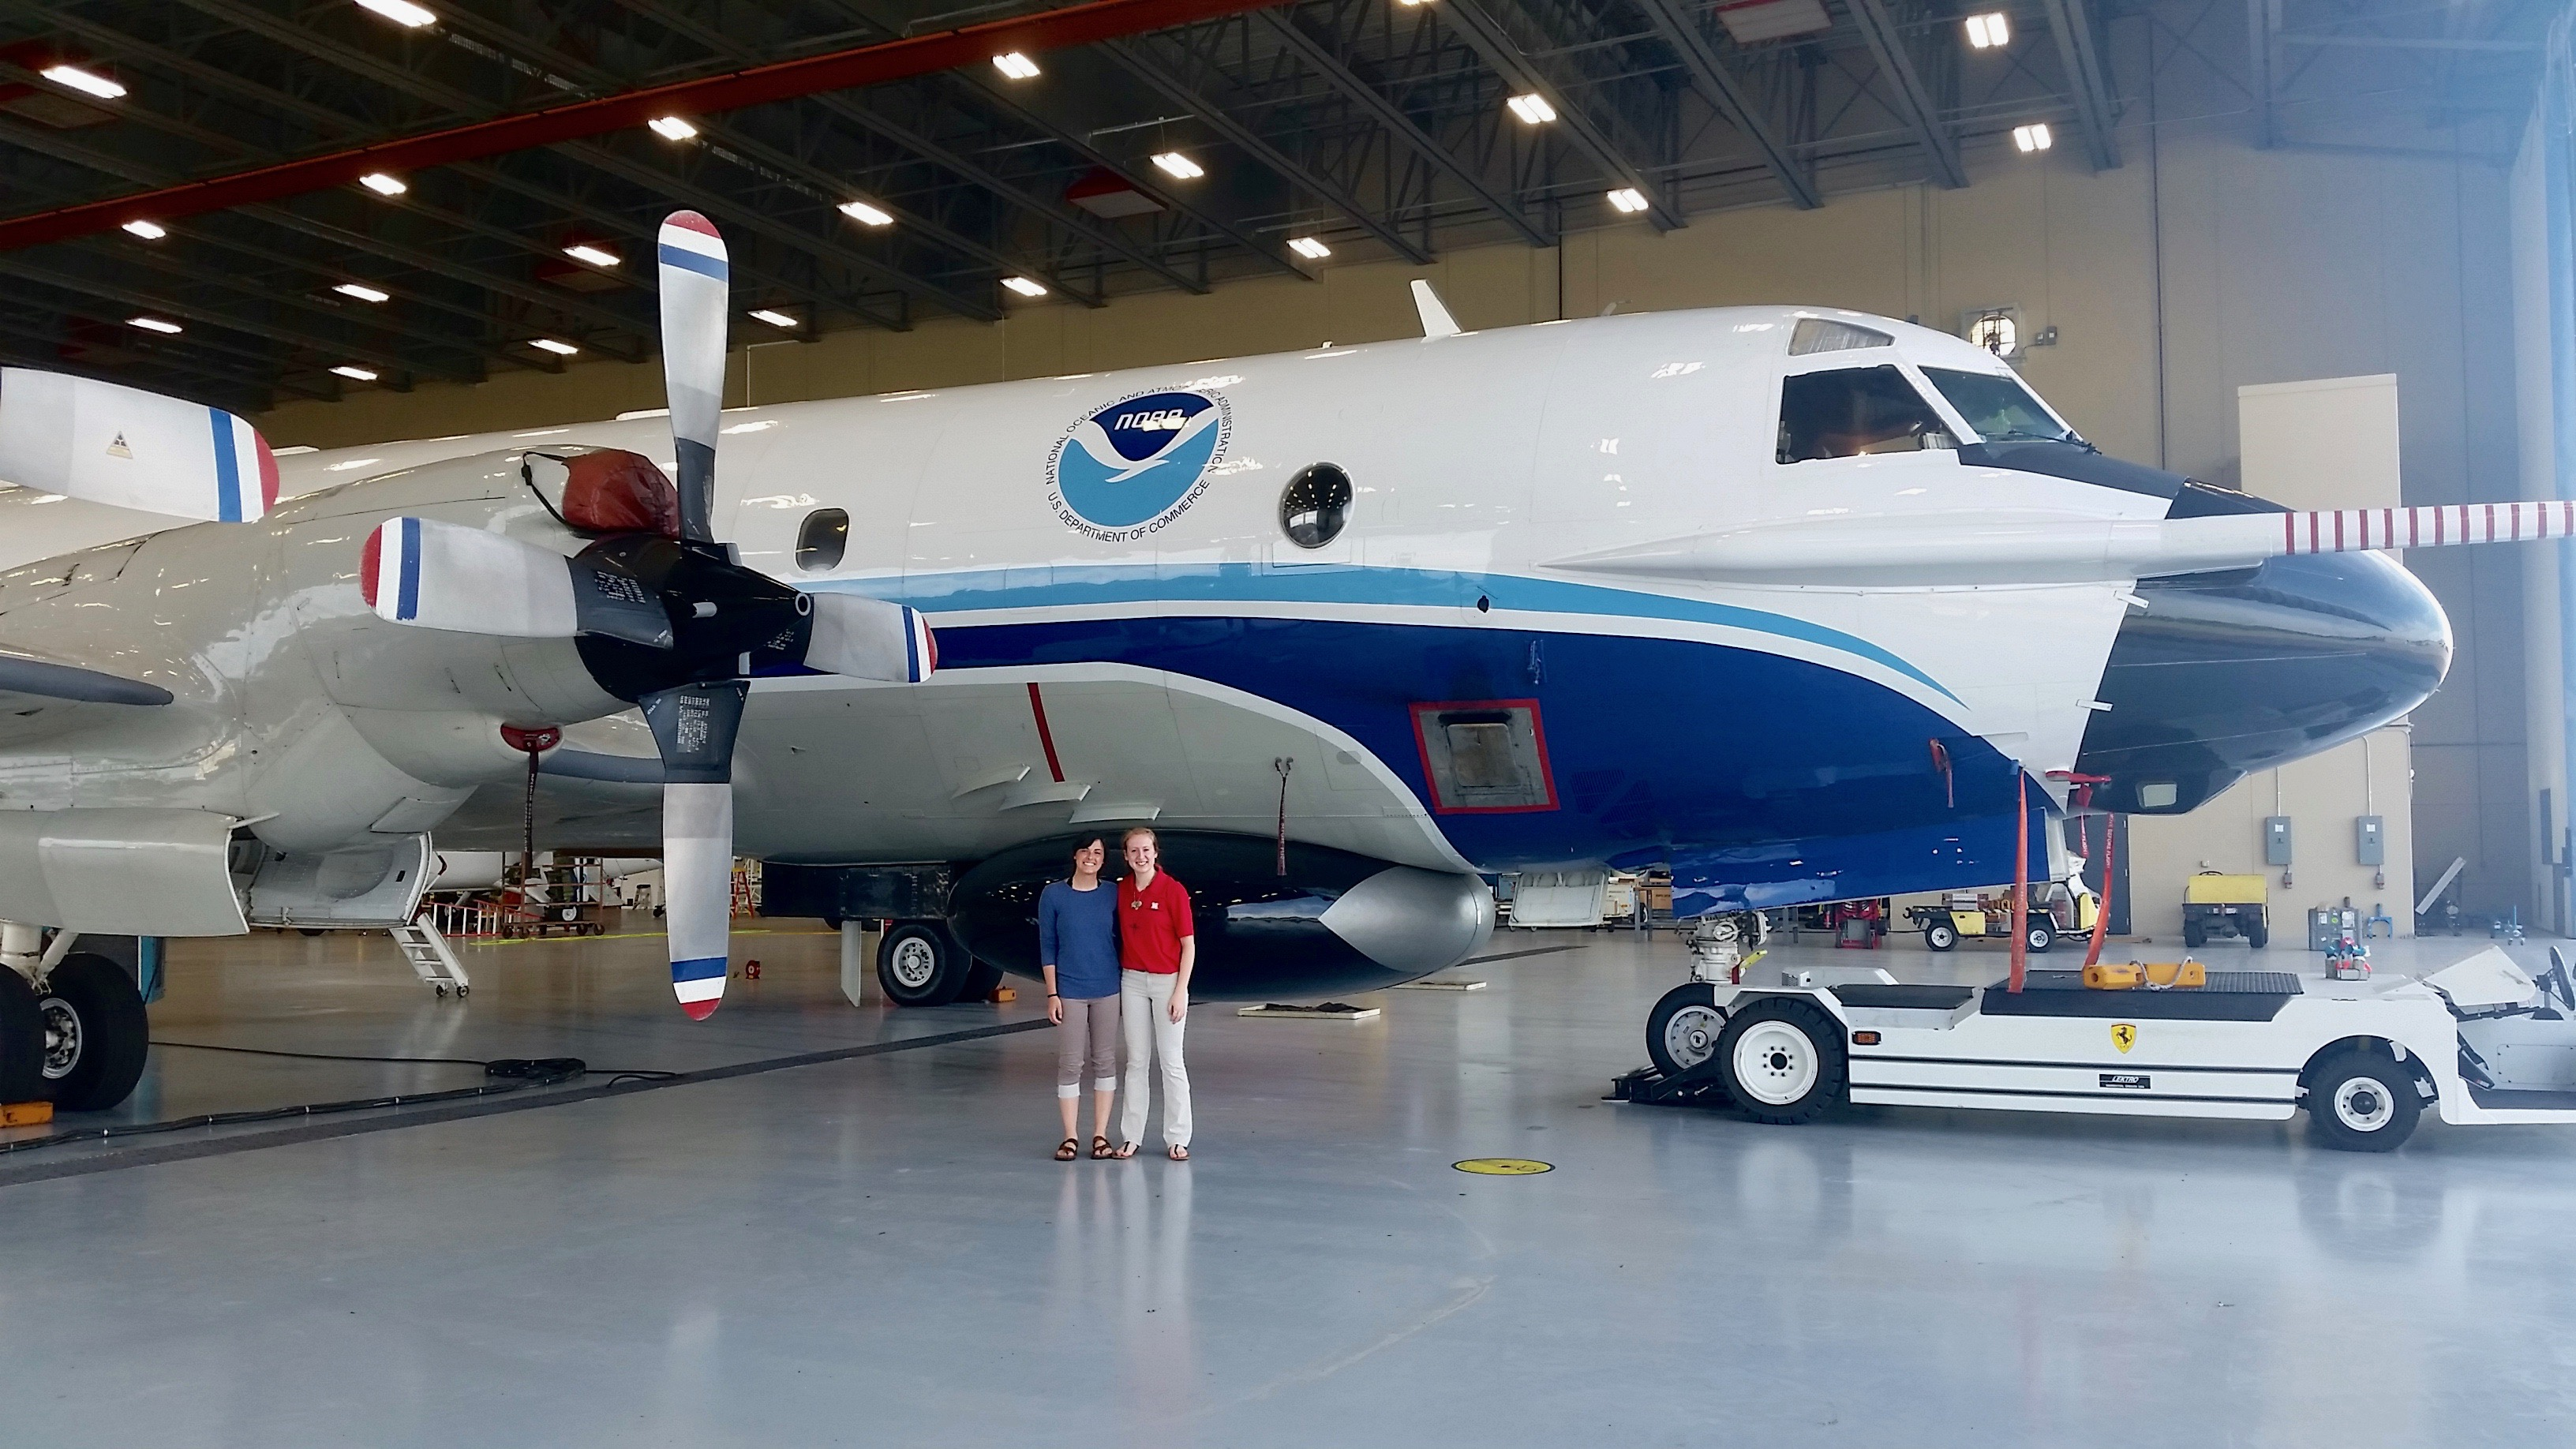 Interns Emily Paltz and Rani Wiggins visit the new Aircraft Operations Center at Linder Regional airport in Lakeland, FL. Image credit: NOAA